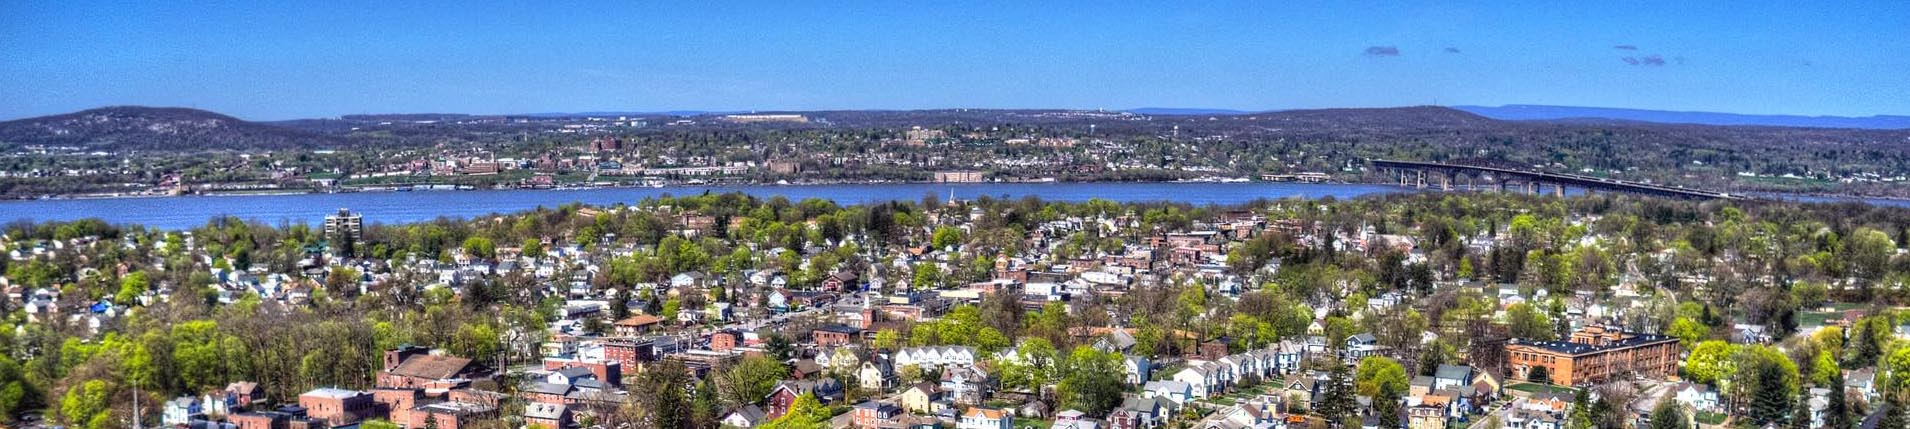 city of beacon landscape and river